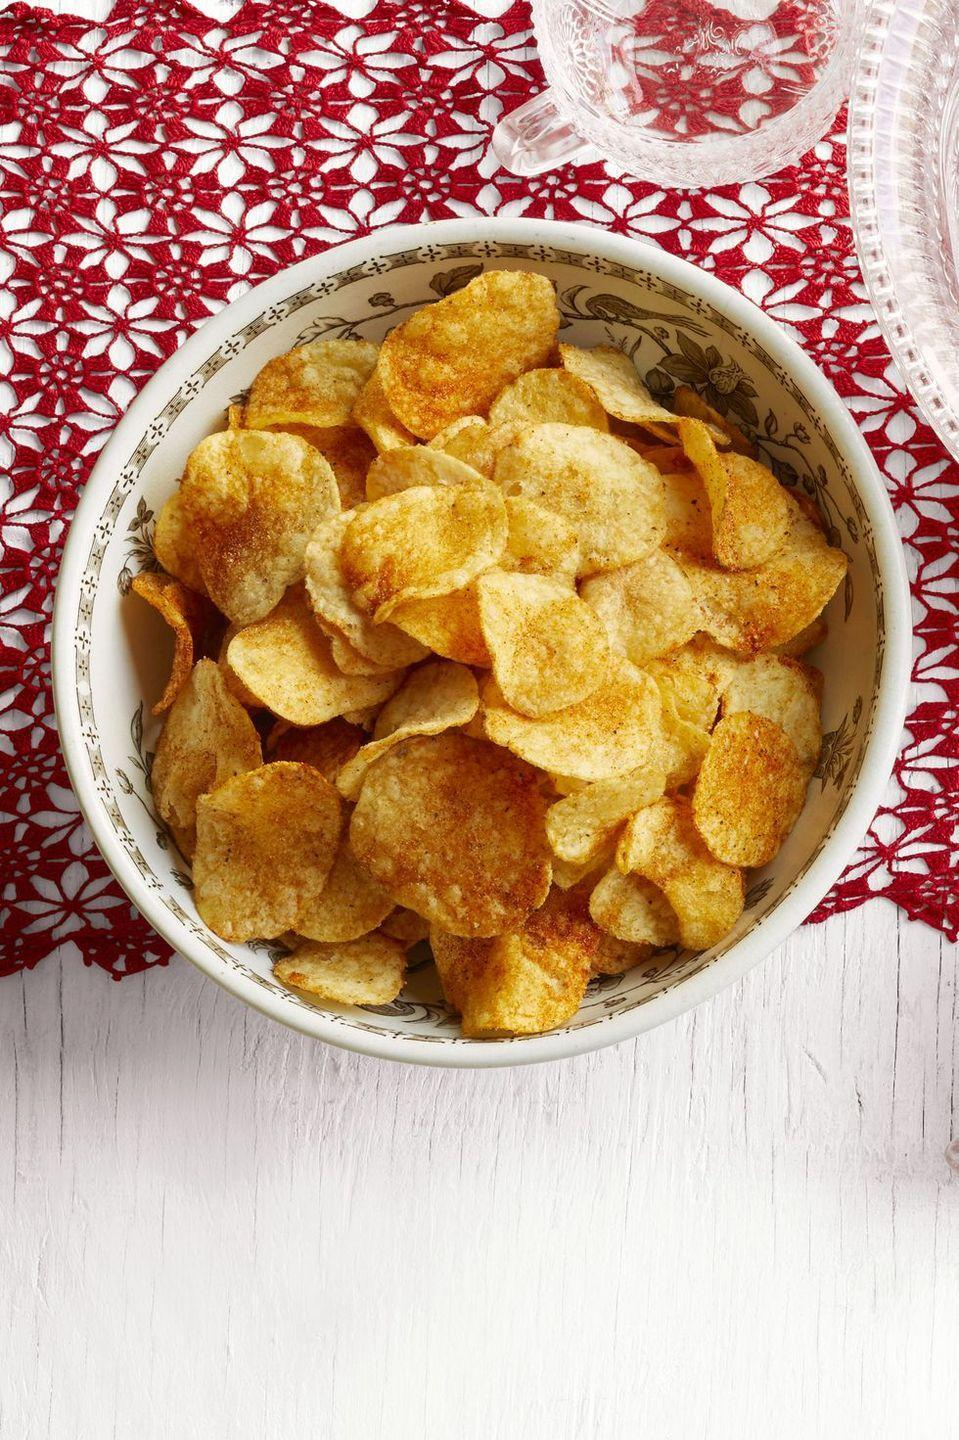 """<p>All you need are some bags of kettle-cooked chips and a variety of spices to make this flavorful snack. It pairs well with watching football. 😉</p><p><a href=""""https://www.thepioneerwoman.com/food-cooking/recipes/a34272361/spiced-up-potato-chips-recipe/"""" rel=""""nofollow noopener"""" target=""""_blank"""" data-ylk=""""slk:Get Ree's recipe."""" class=""""link rapid-noclick-resp""""><strong>Get Ree's recipe.</strong></a></p>"""